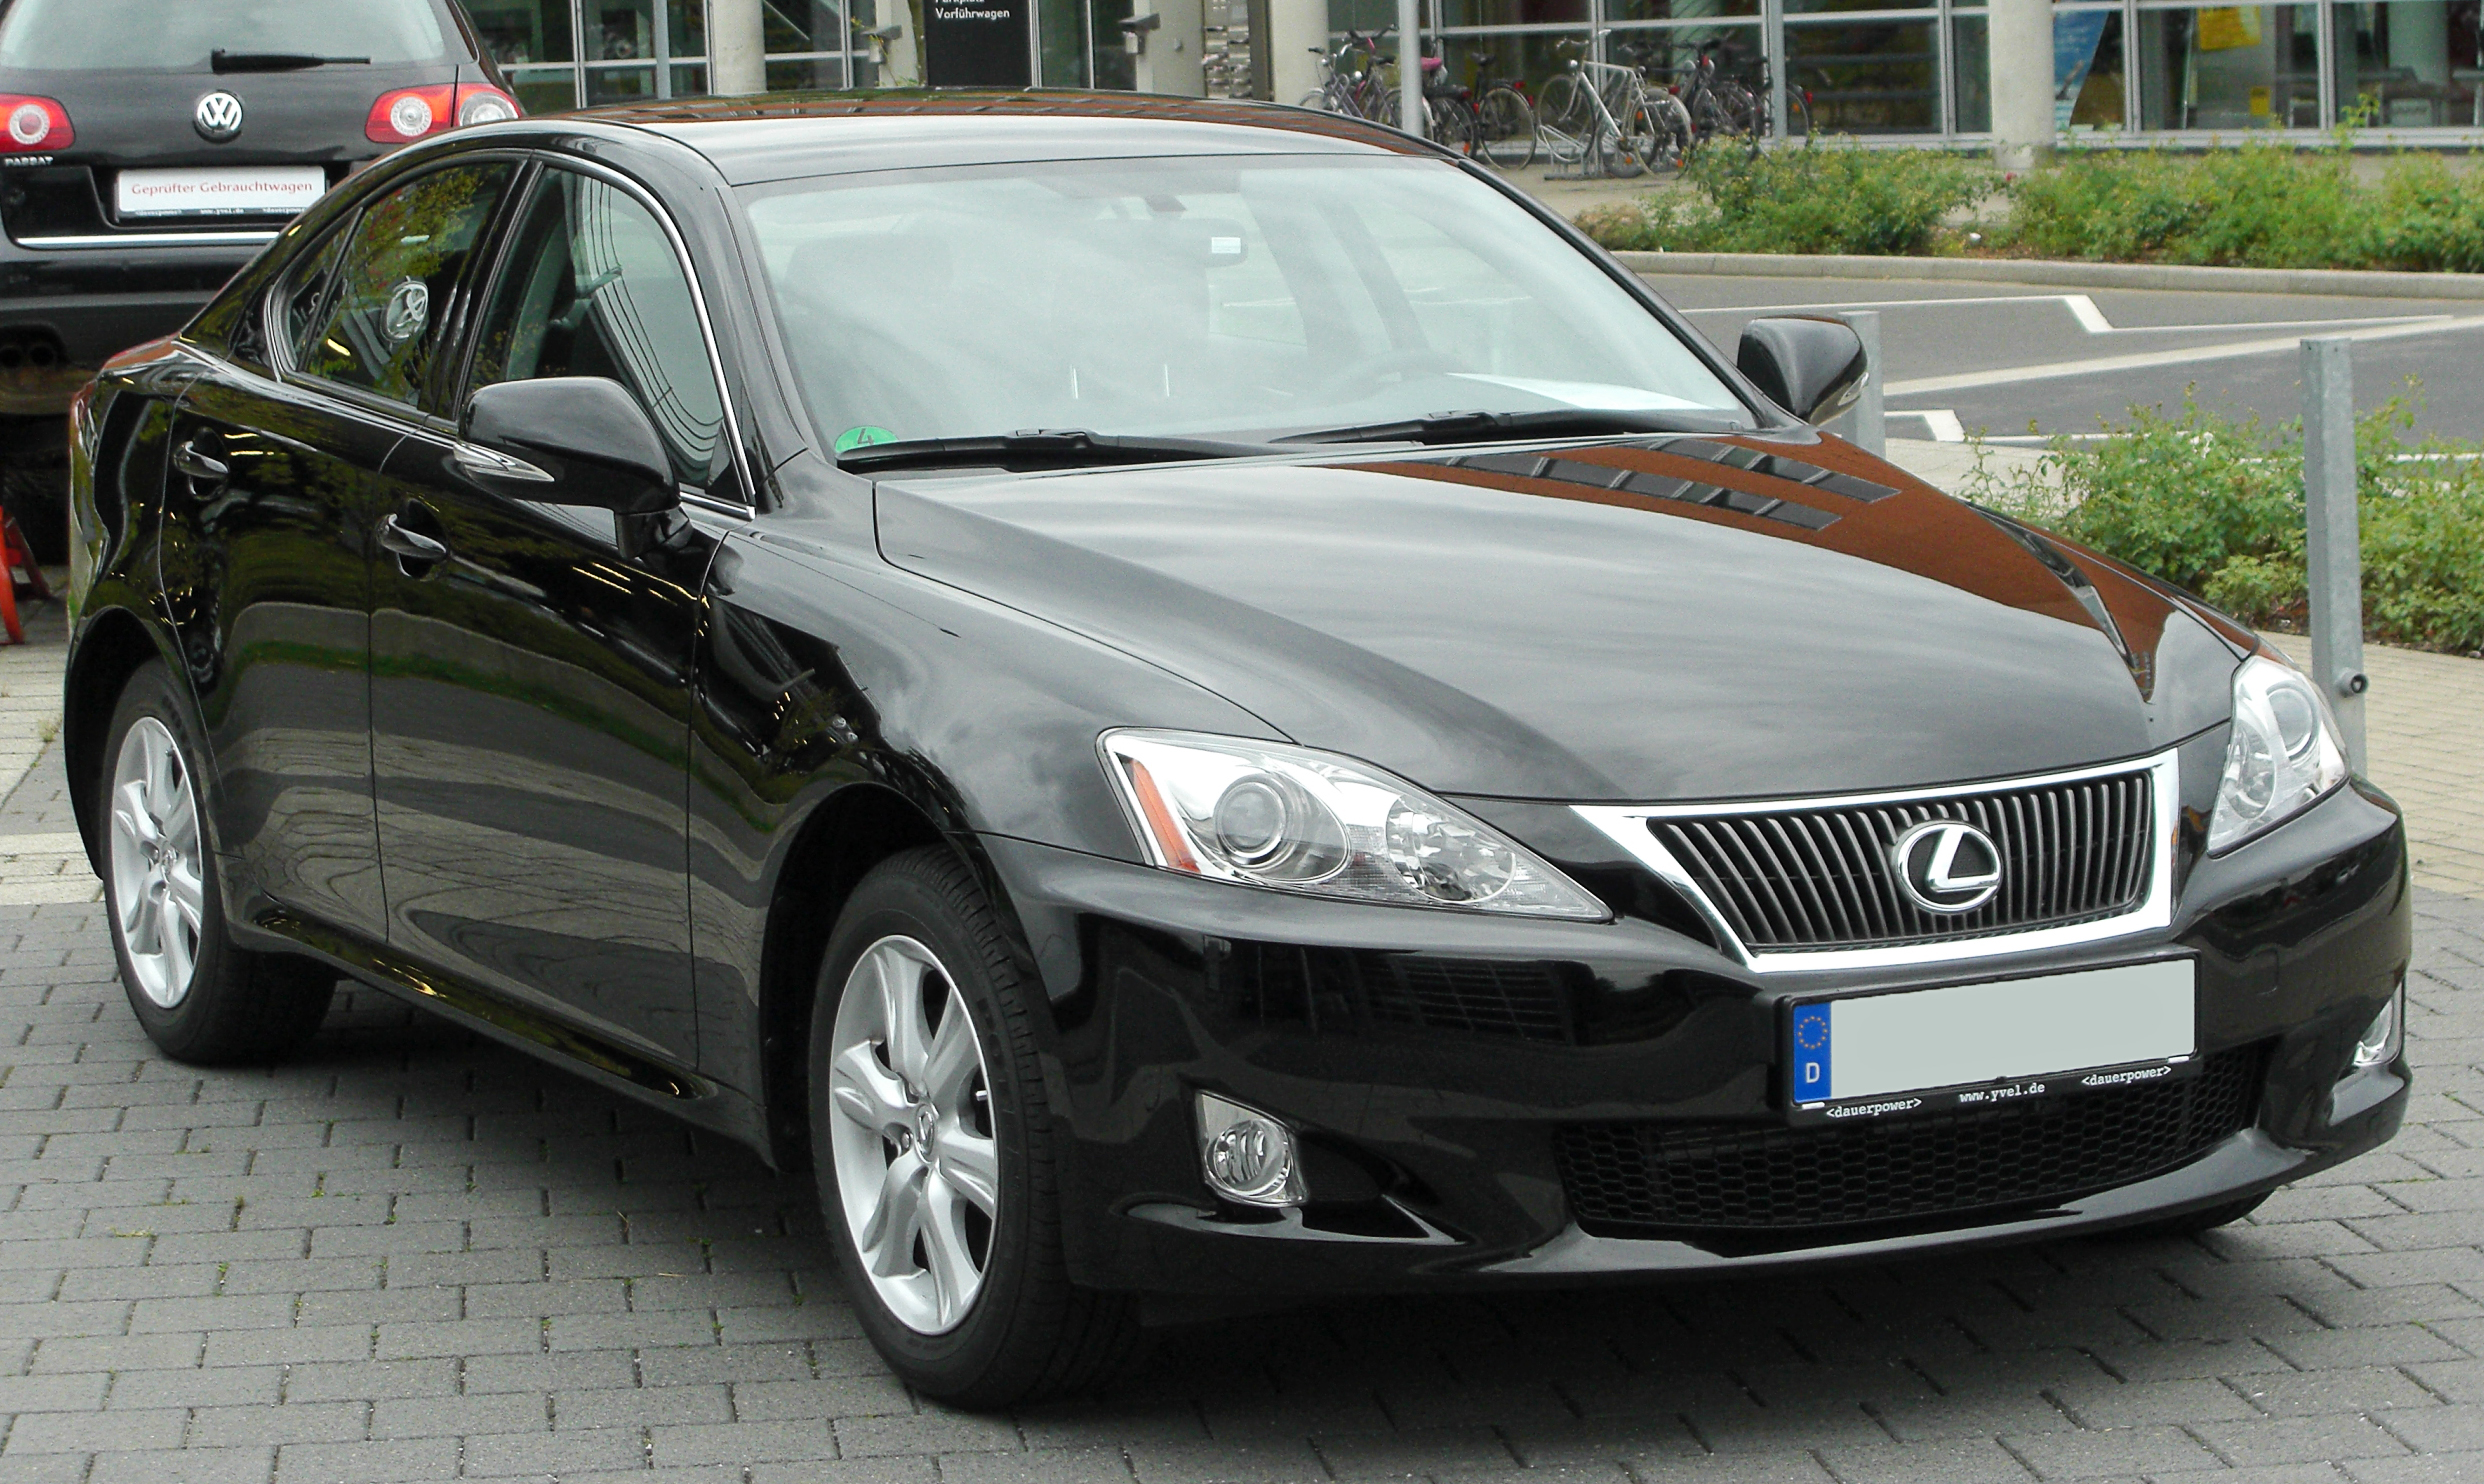 file lexus is 220d xe2 facelift front wikimedia commons. Black Bedroom Furniture Sets. Home Design Ideas